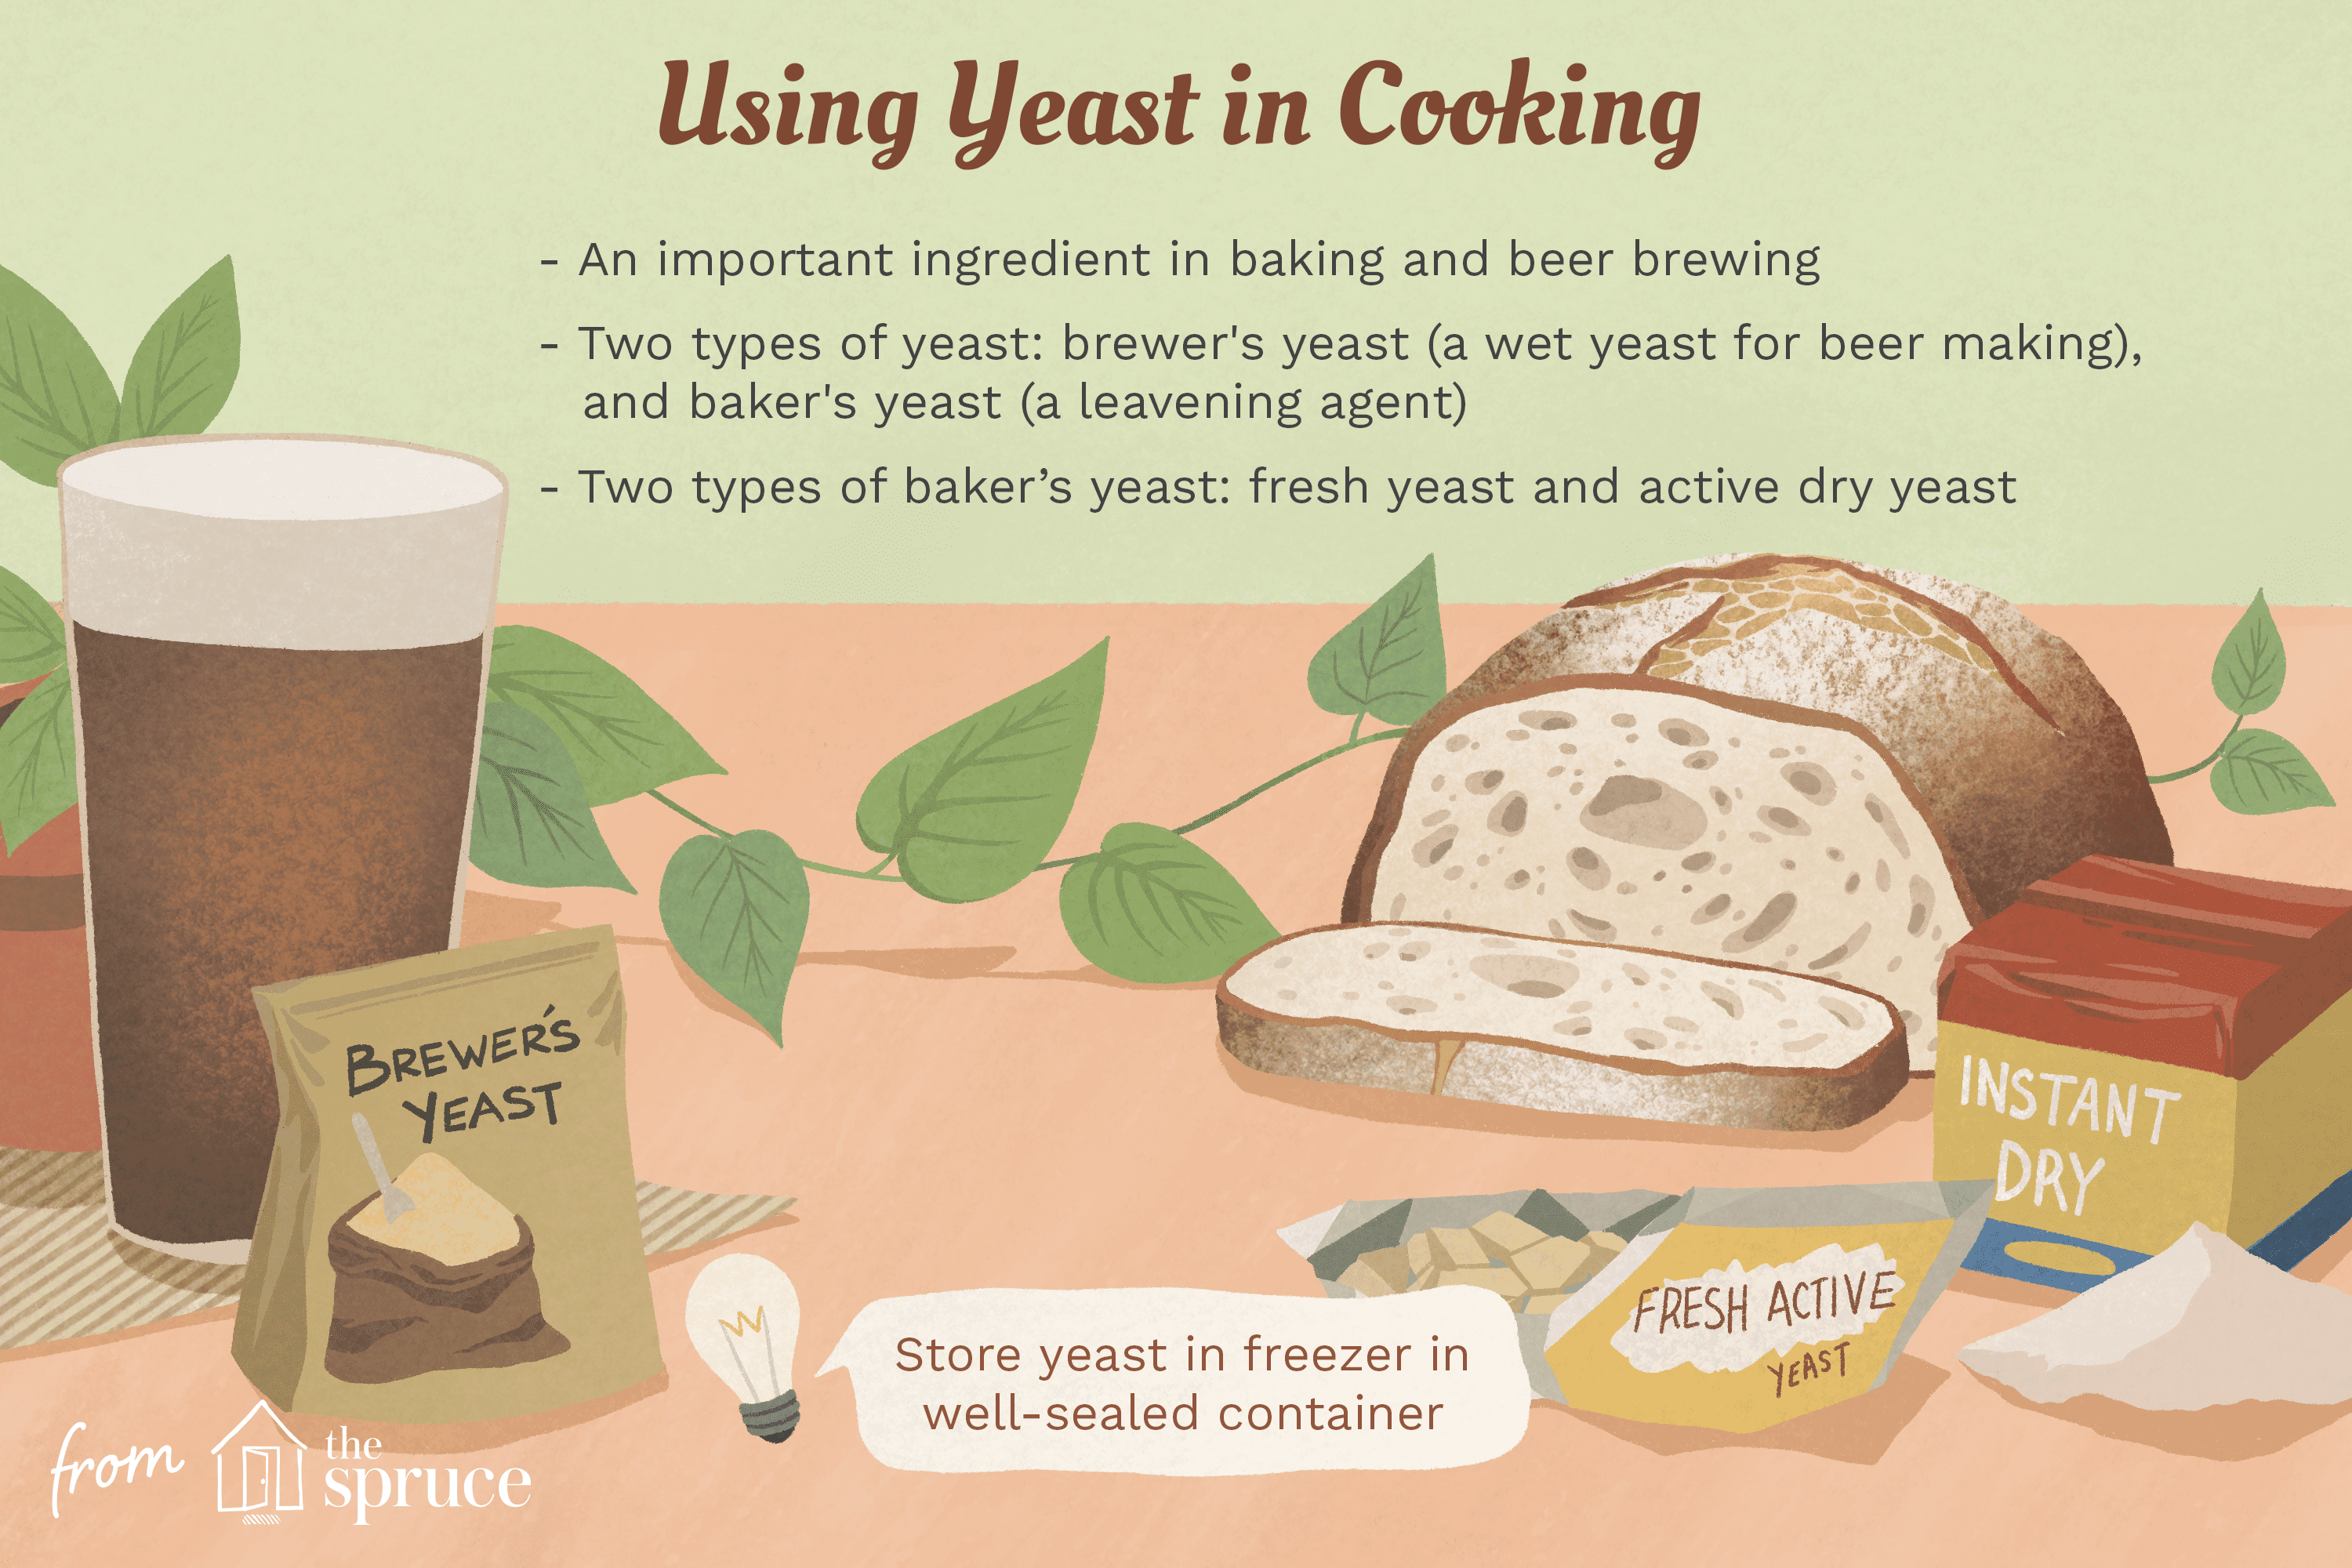 Illustration With Facts About Yeast